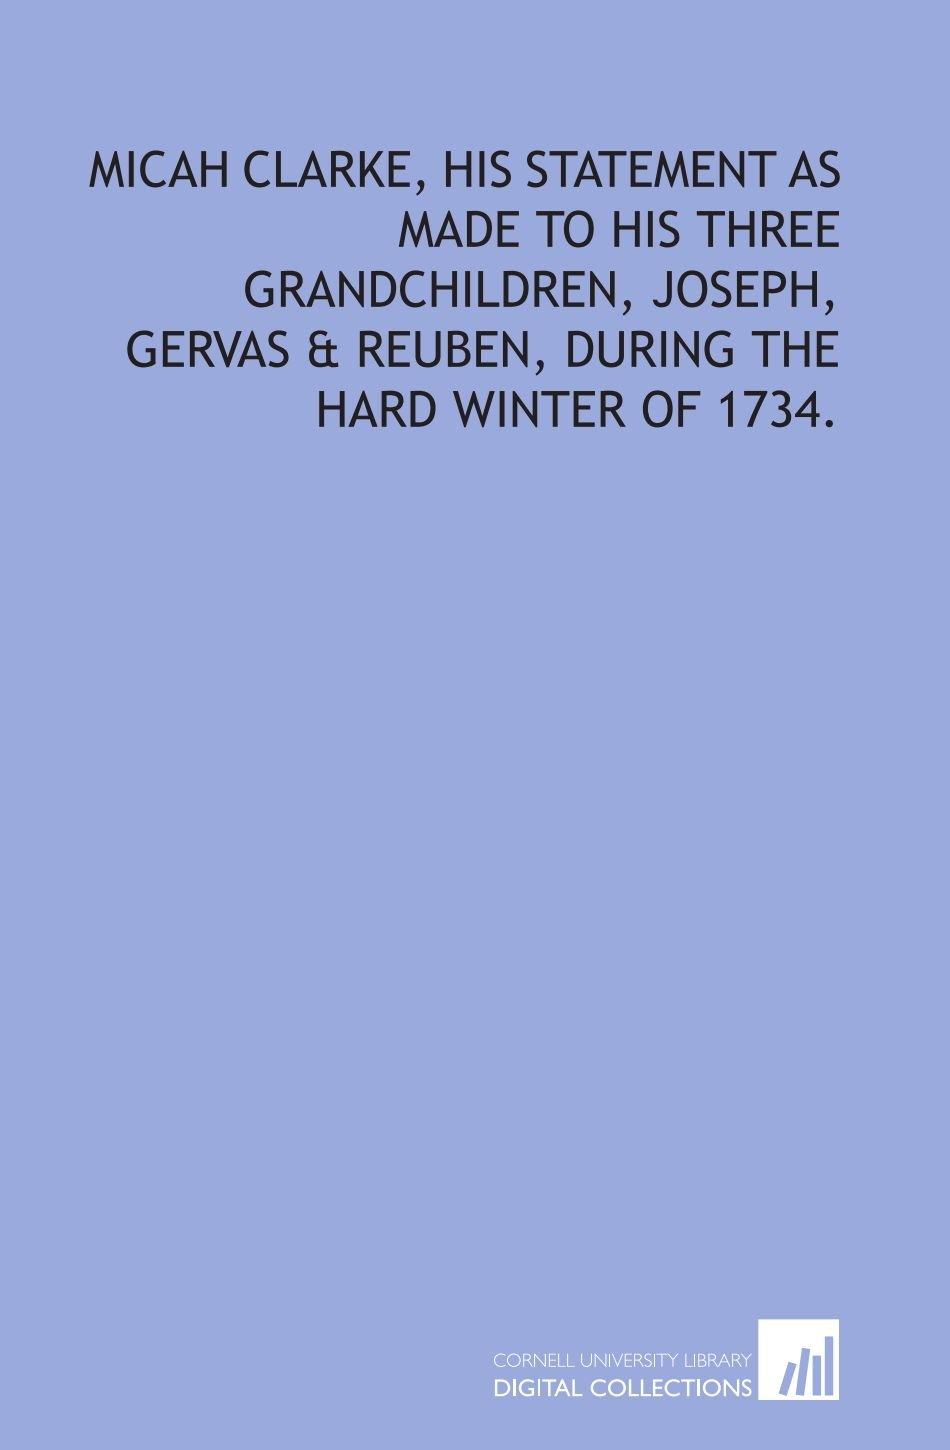 Read Online Micah Clarke, his statement as made to his three grandchildren, Joseph, Gervas & Reuben, during the hard winter of 1734. ebook